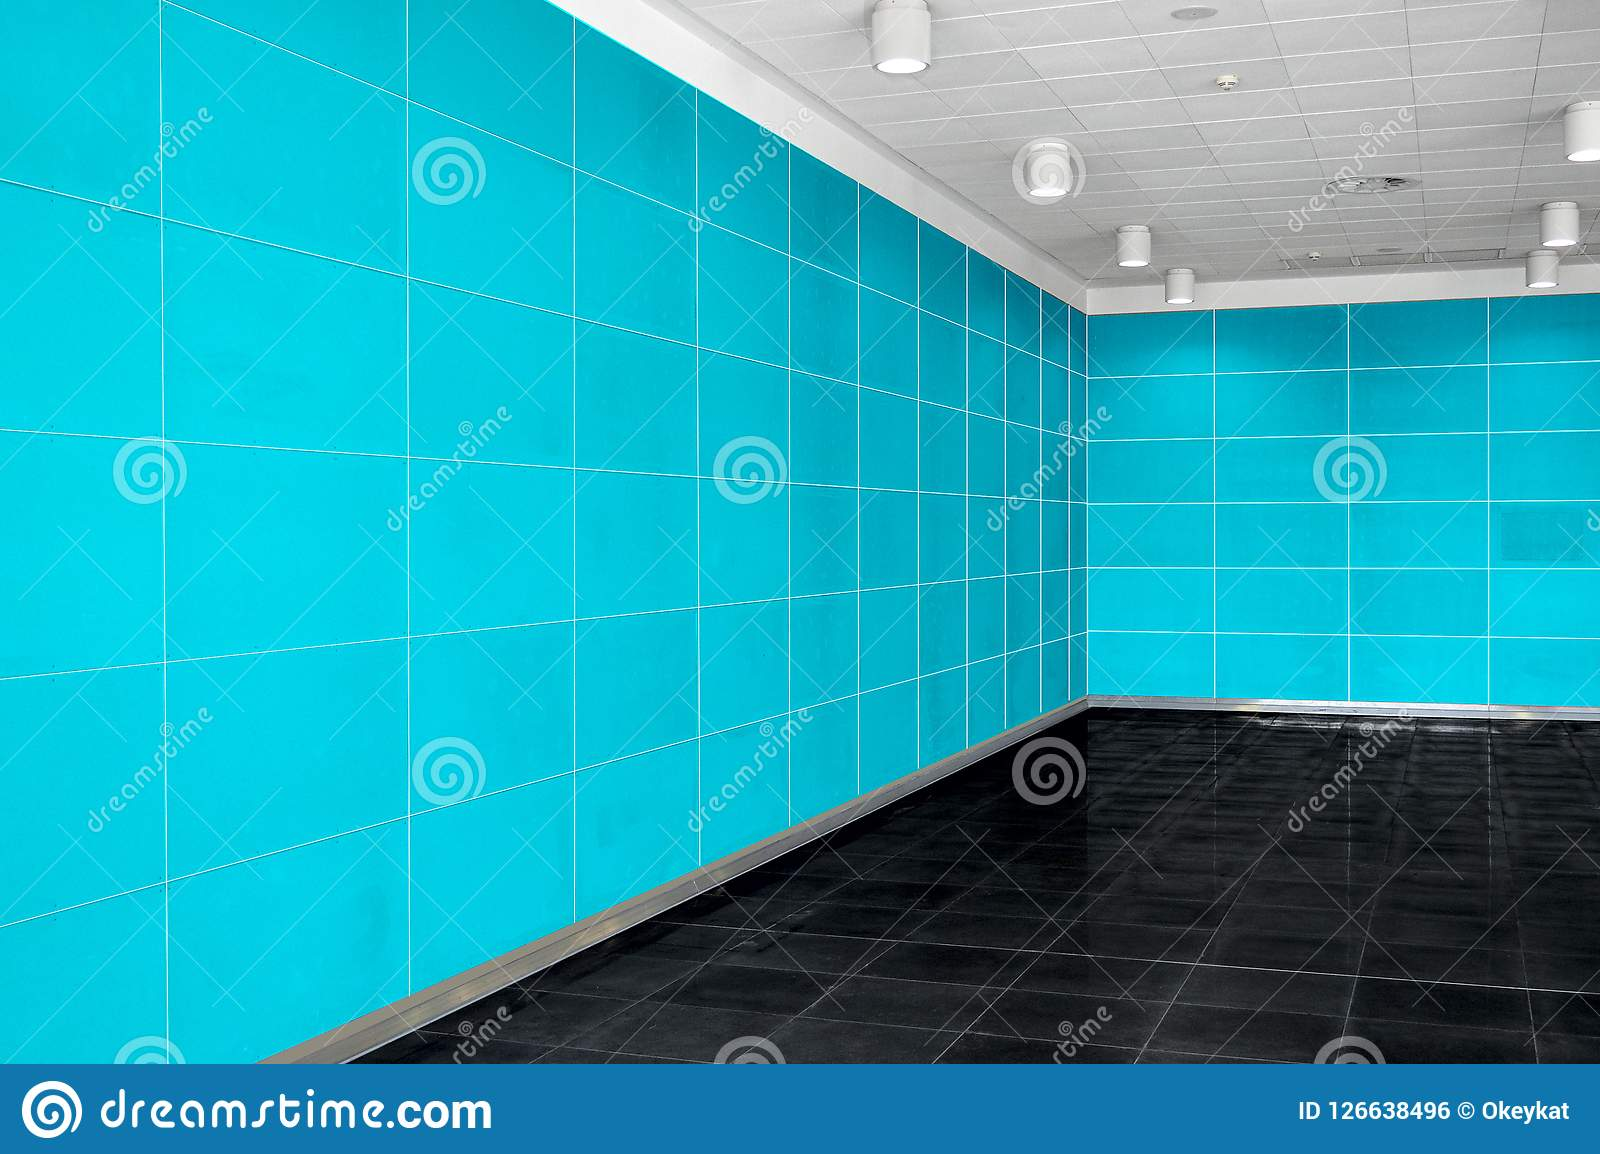 Big empty room interior with bright blue wall, whire ceiling and